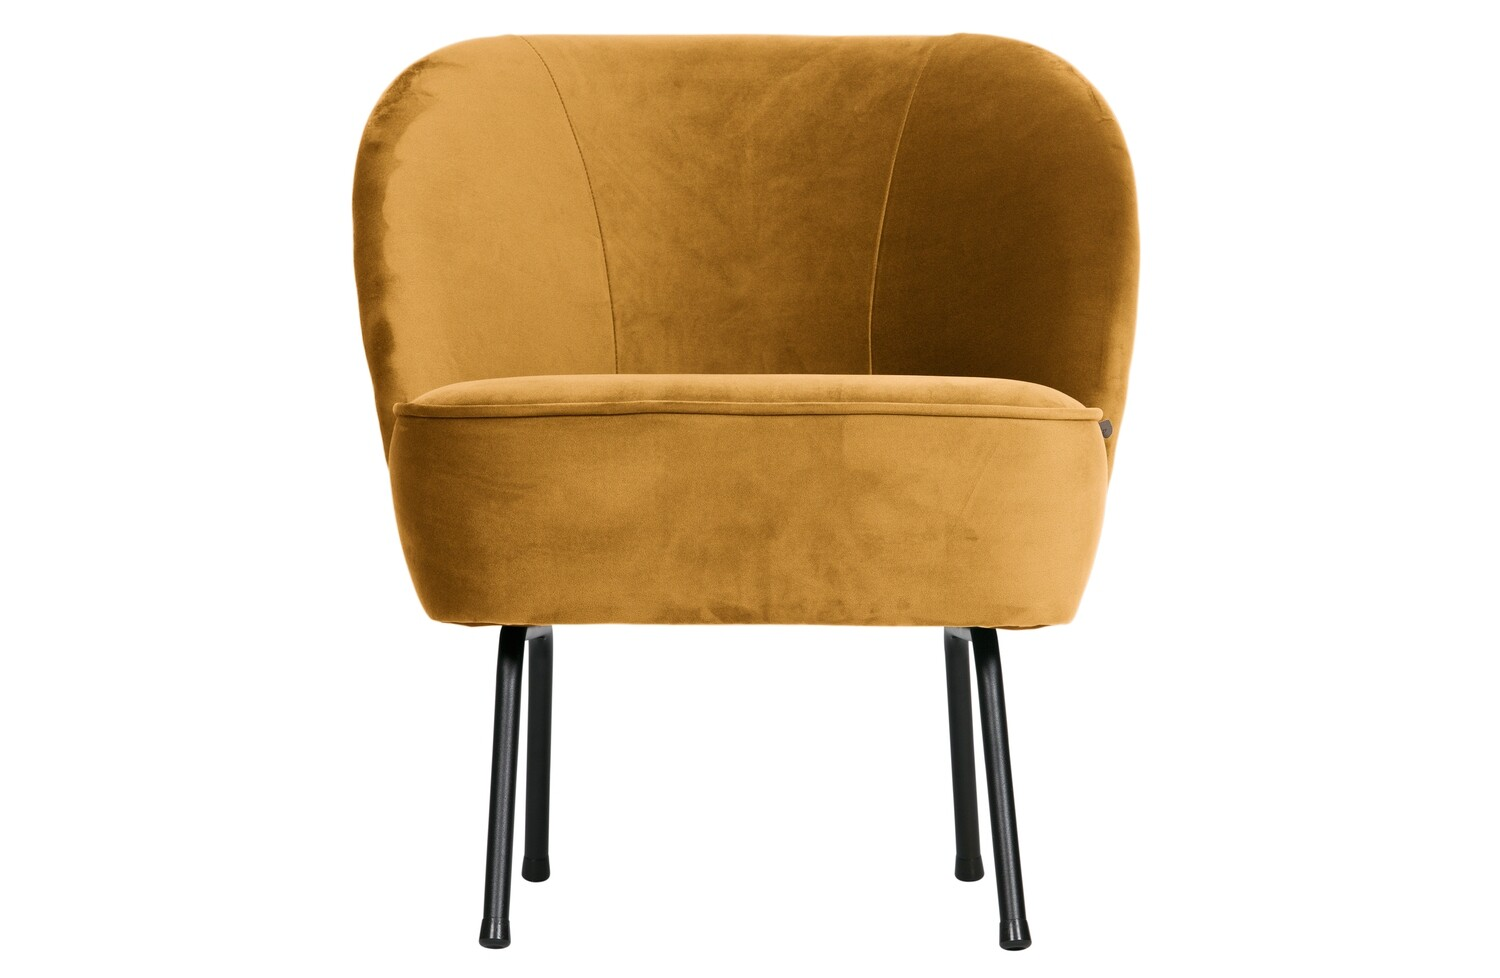 Vogue armchair